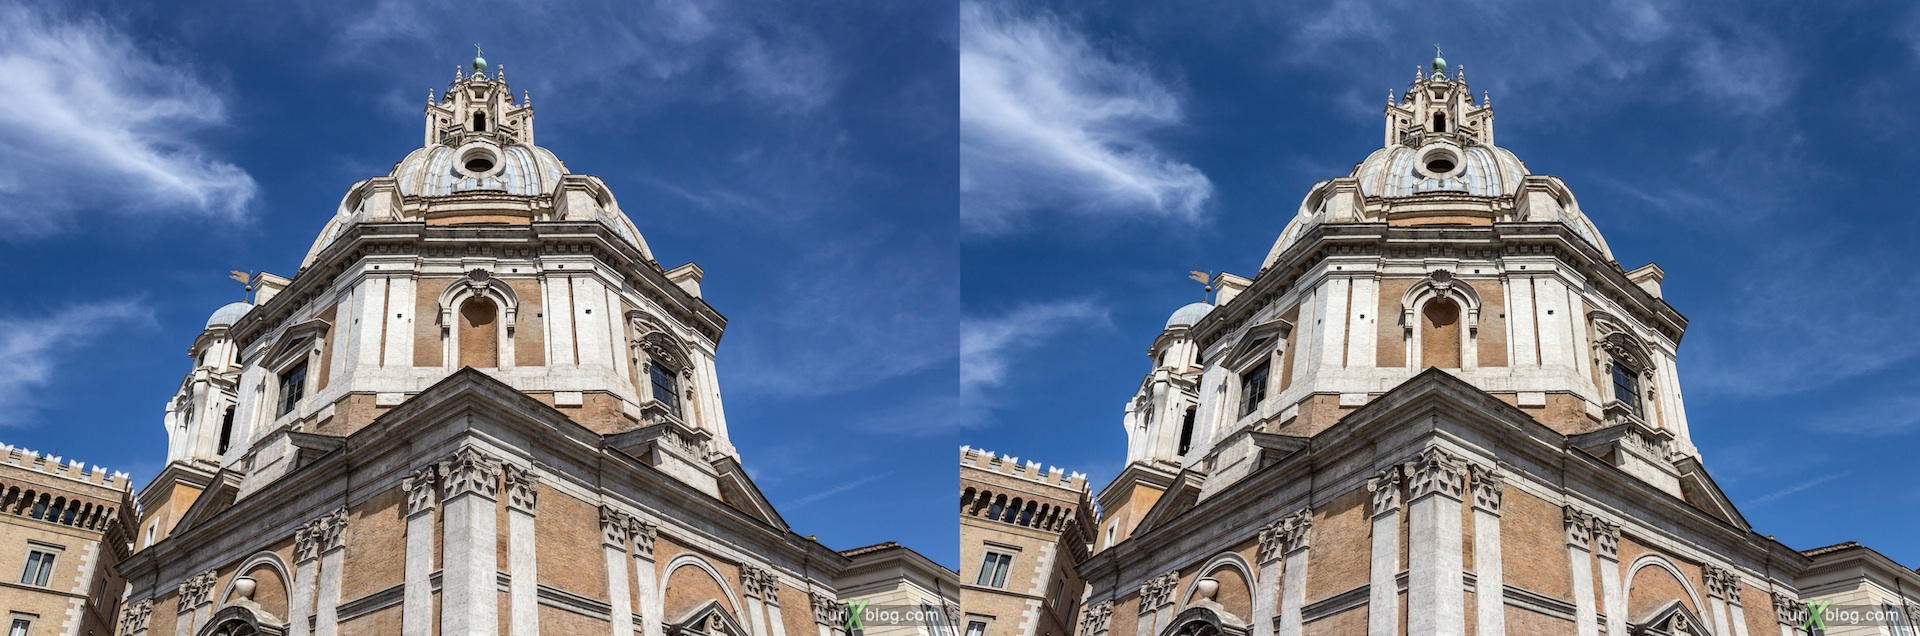 2012, Church of the Most Holy Name of Mary, Trajan forum, 3D, stereo pair, cross-eyed, crossview, cross view stereo pair